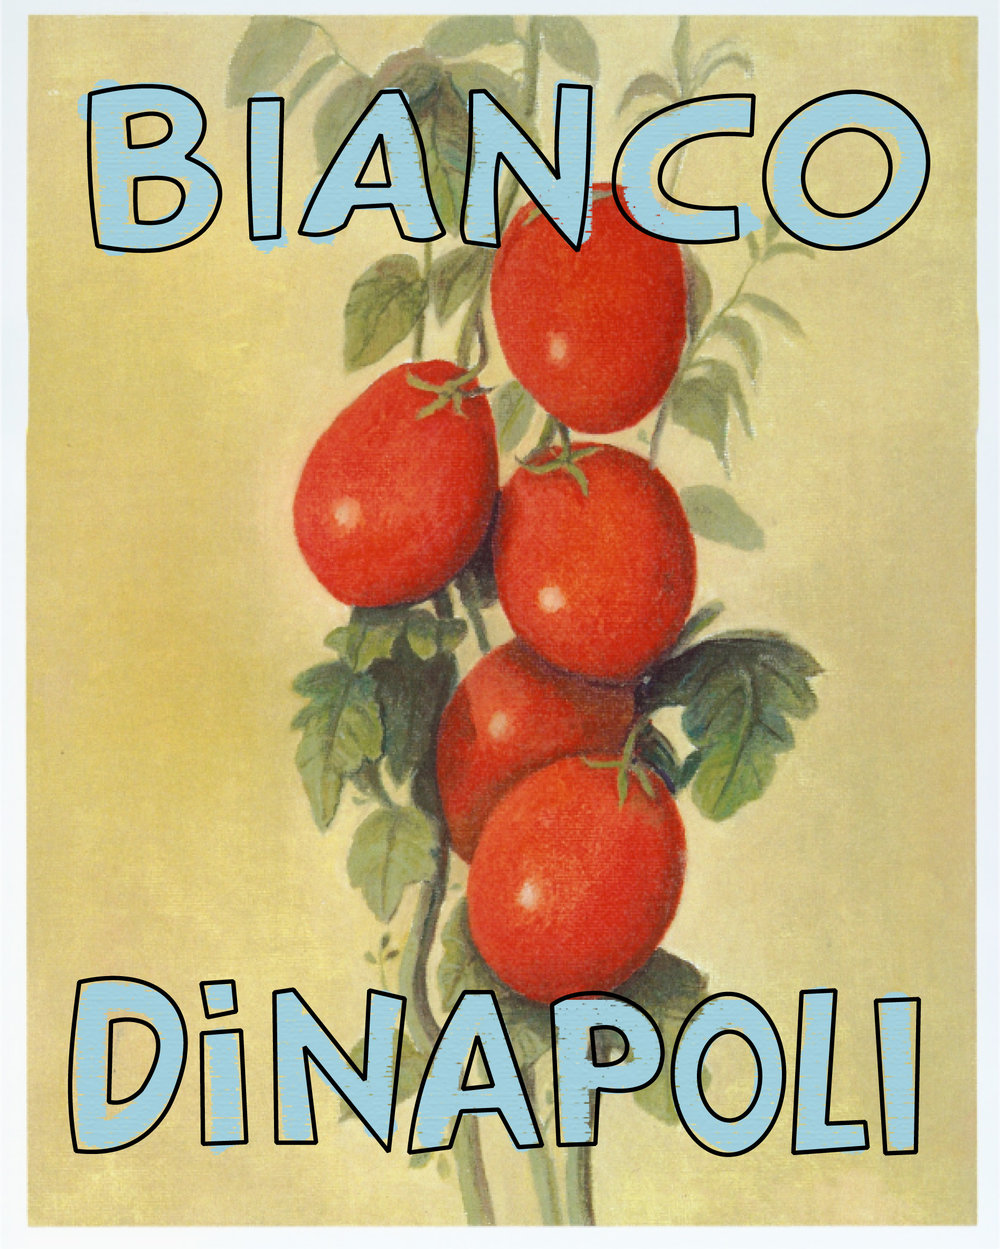 Bianco DiNapoli Master label art  - vector art.jpg